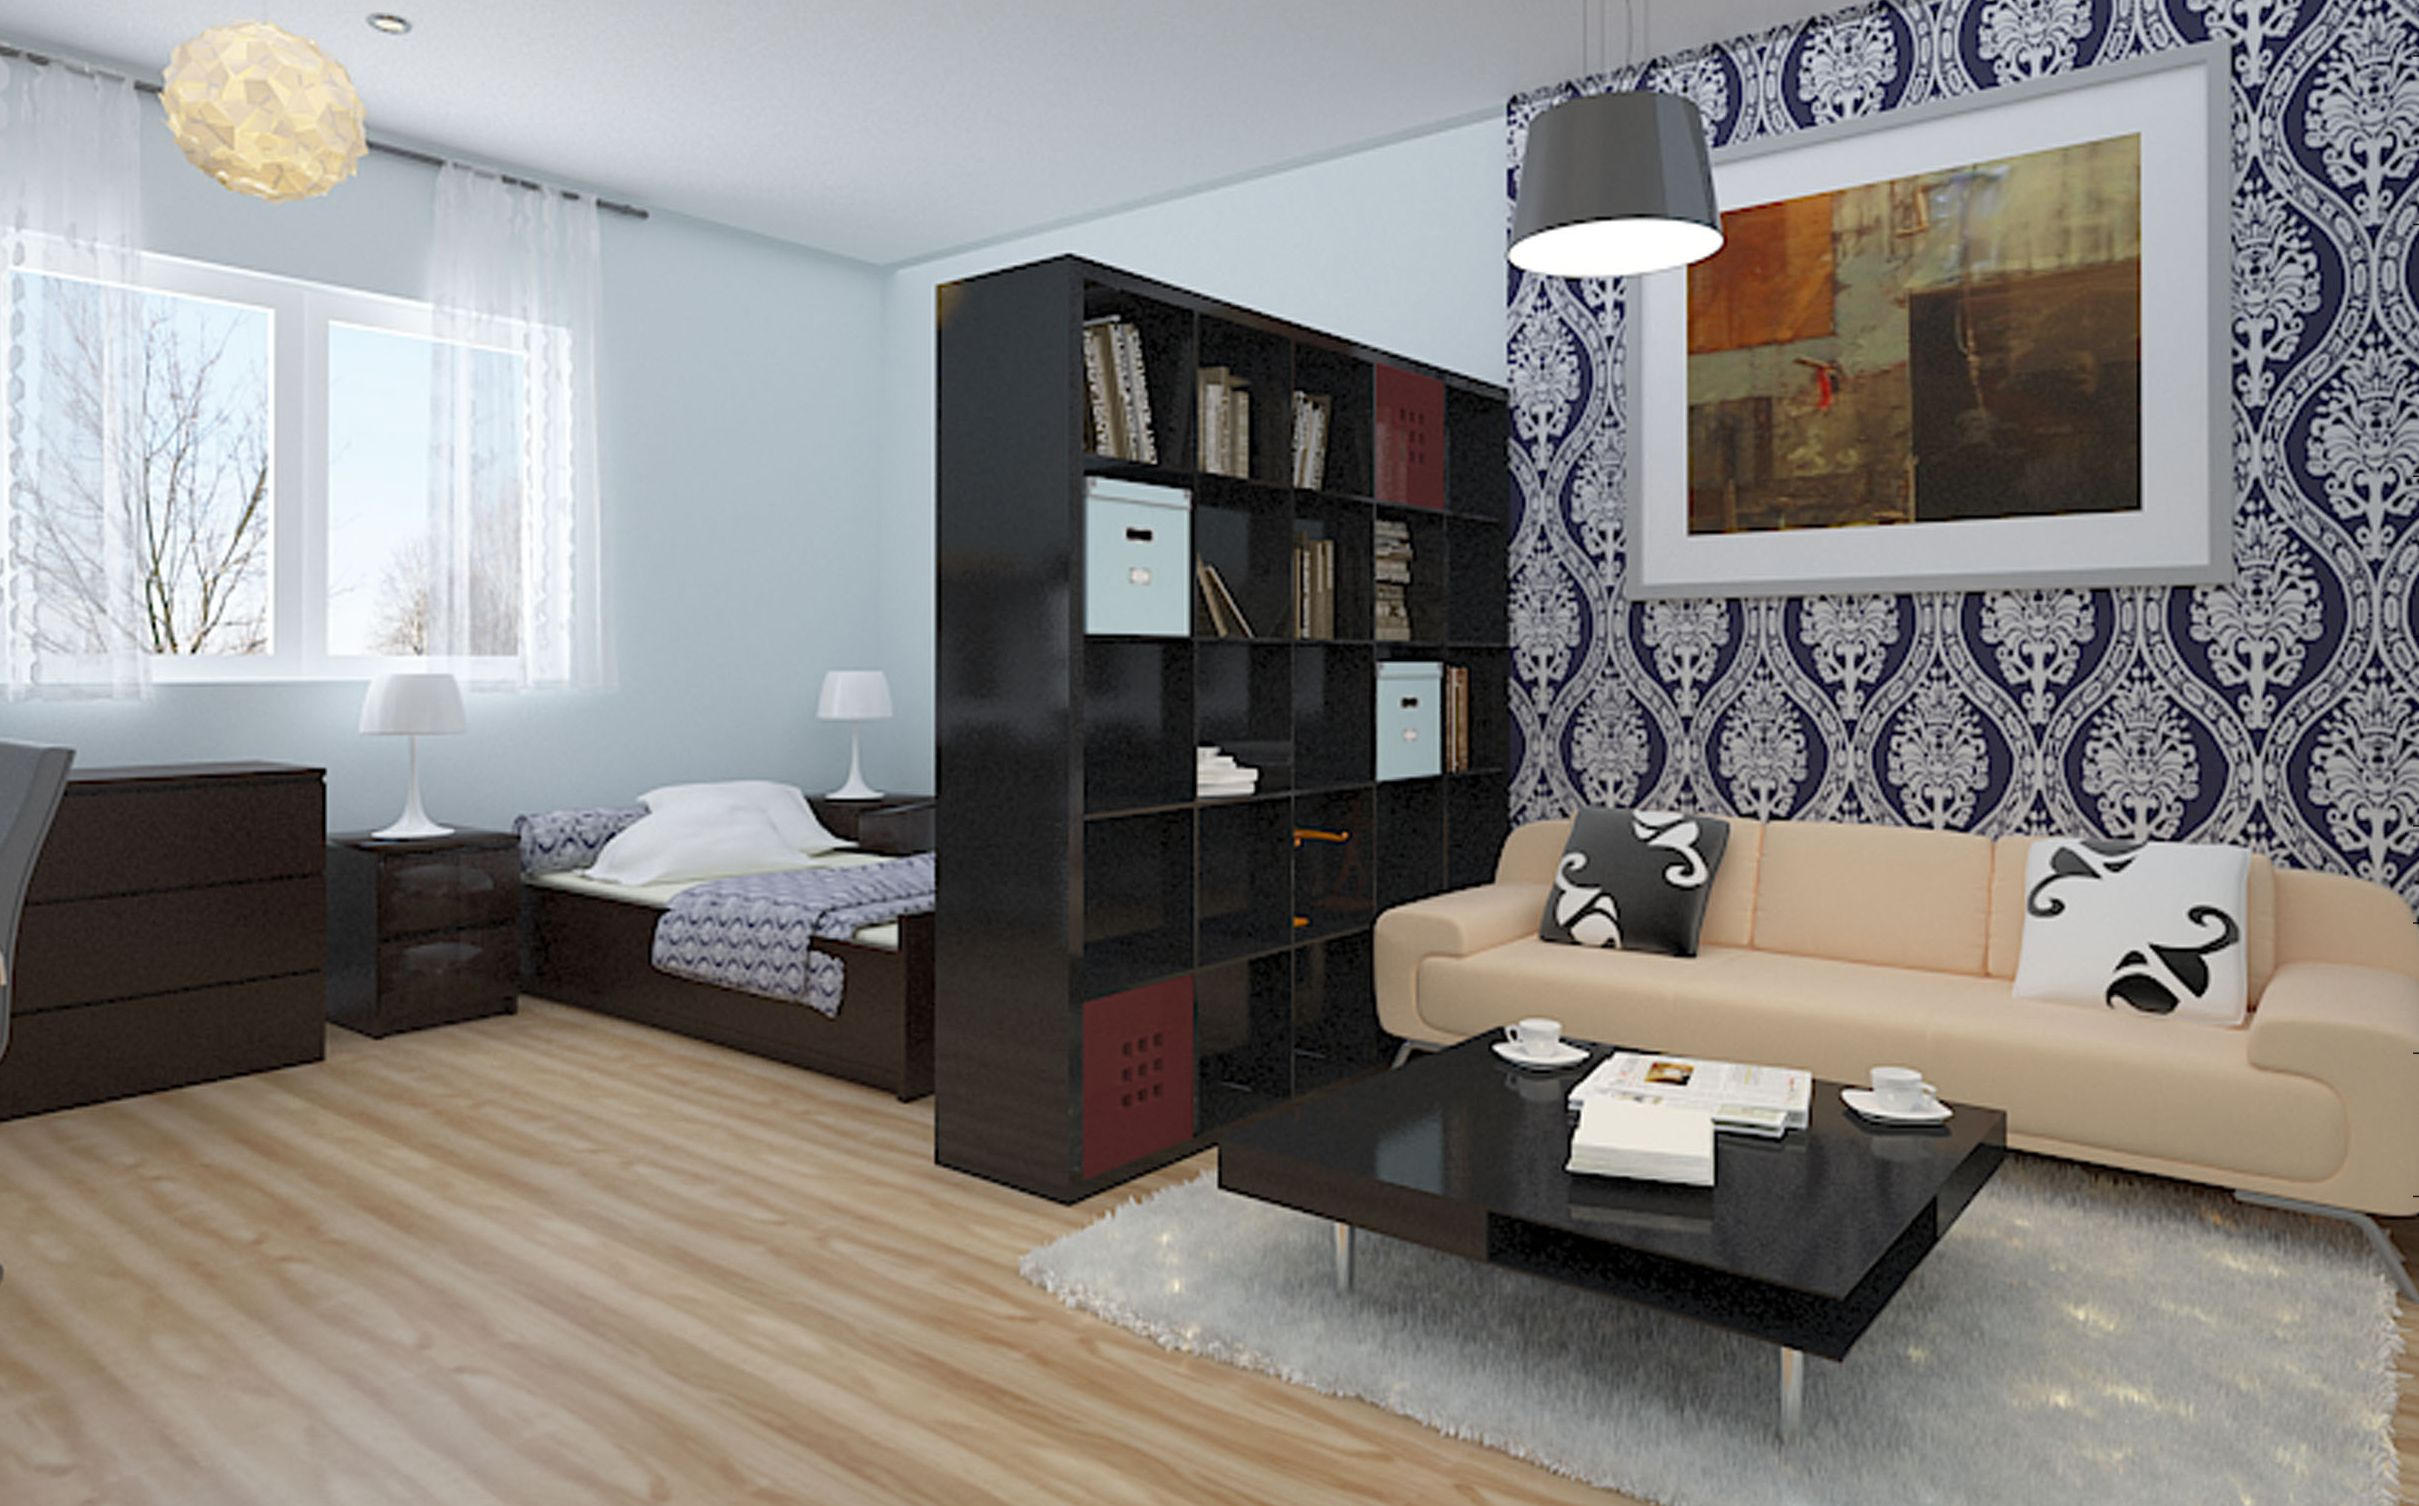 Studio apartment ikea 16821 hd wallpaper desktop res 2419x1506 - Small space apartments ideas ...